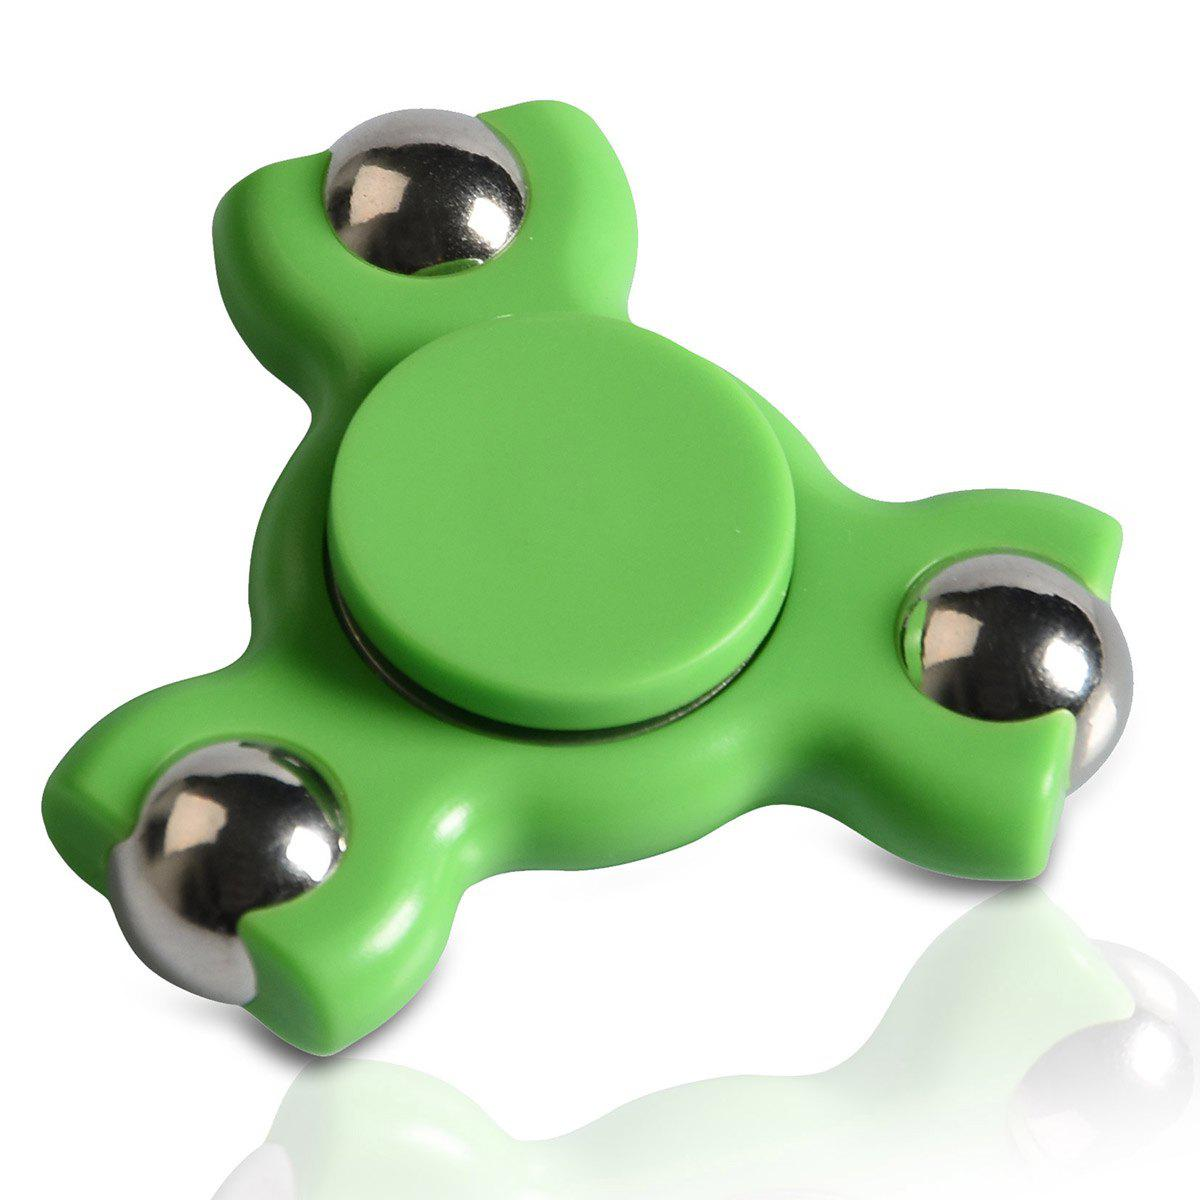 Focus Toy Triangle Ball Bearing Fidget Spinner - GREEN